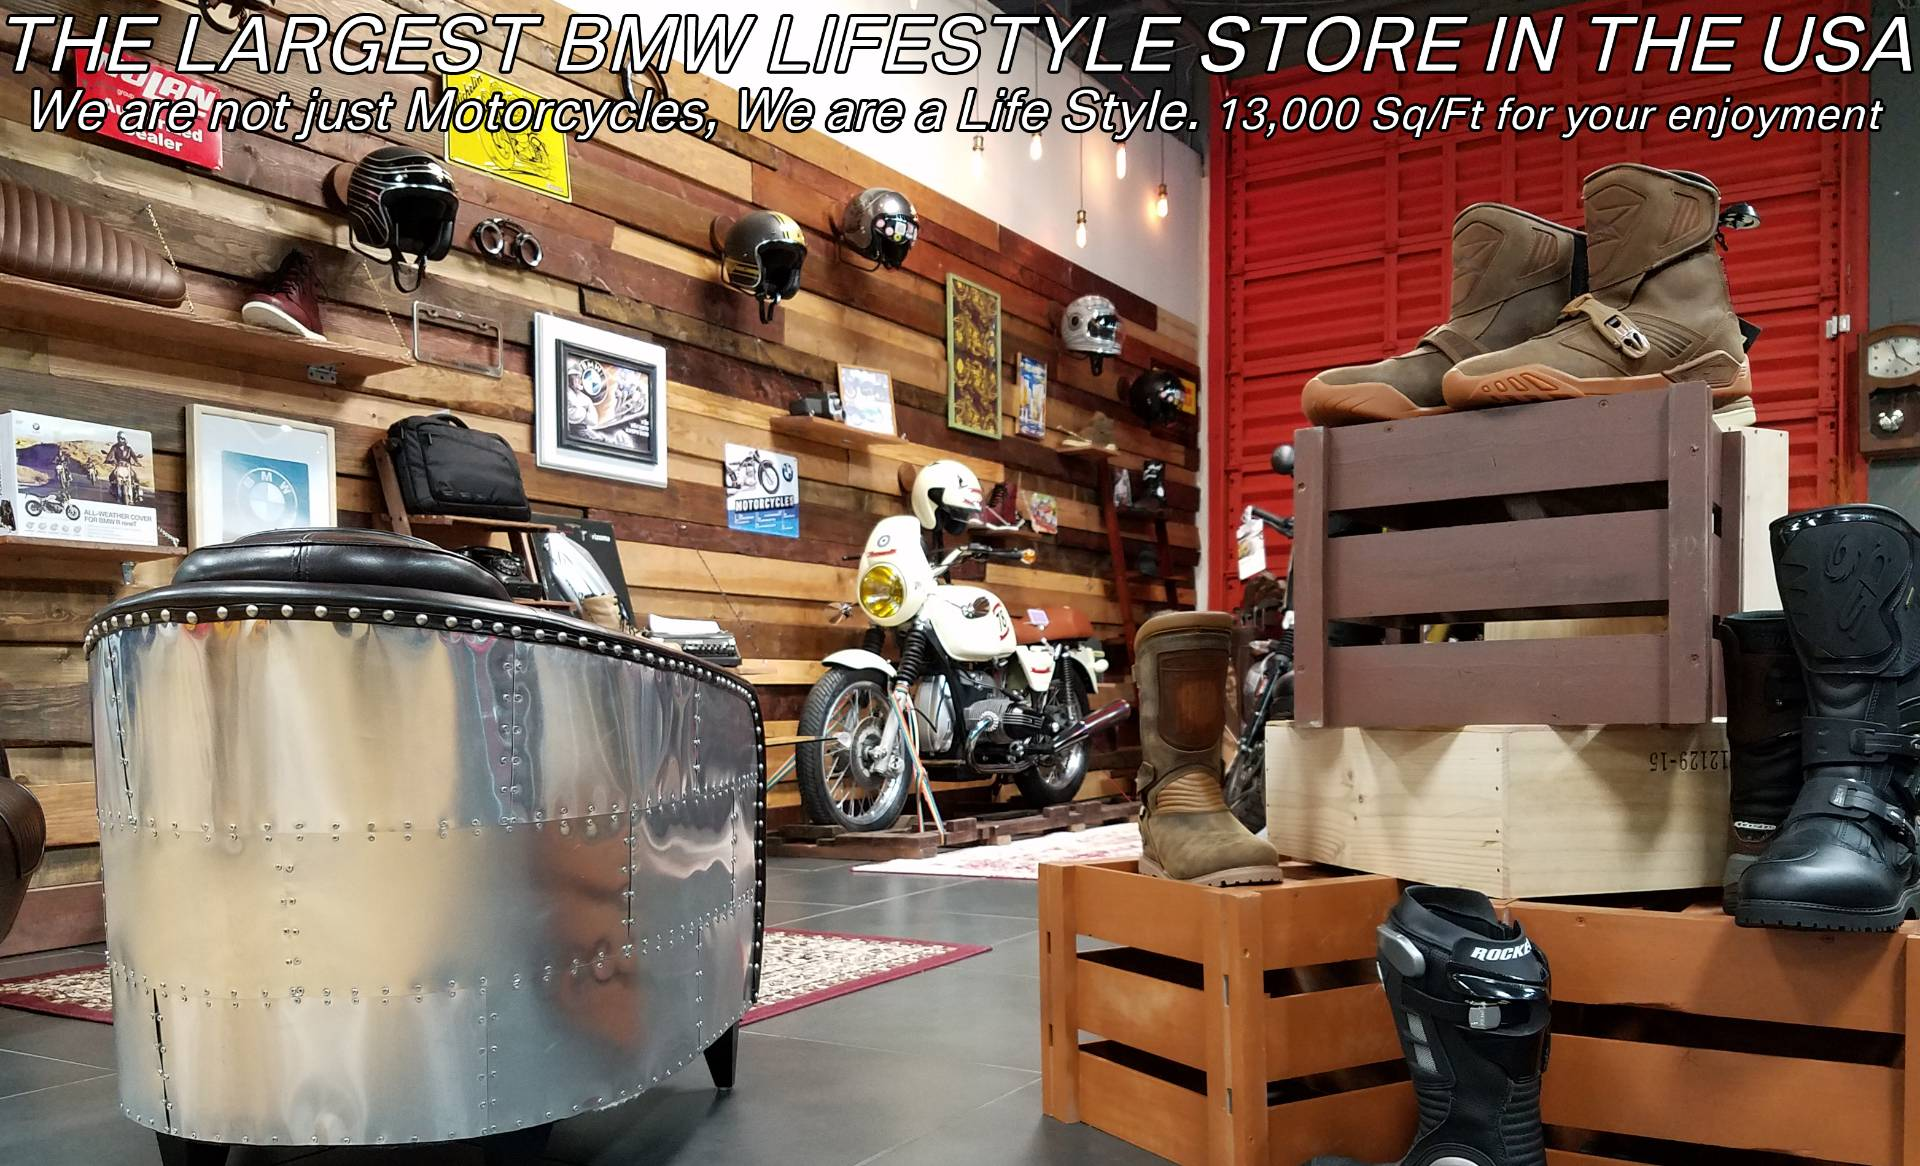 New 2019 BMW R nine T for sale, BMW R nineT for sale, BMW Motorcycle RnineT, BMW Motorcycles of Miami, Motorcycles of Miami, Motorcycles Miami - Photo 32